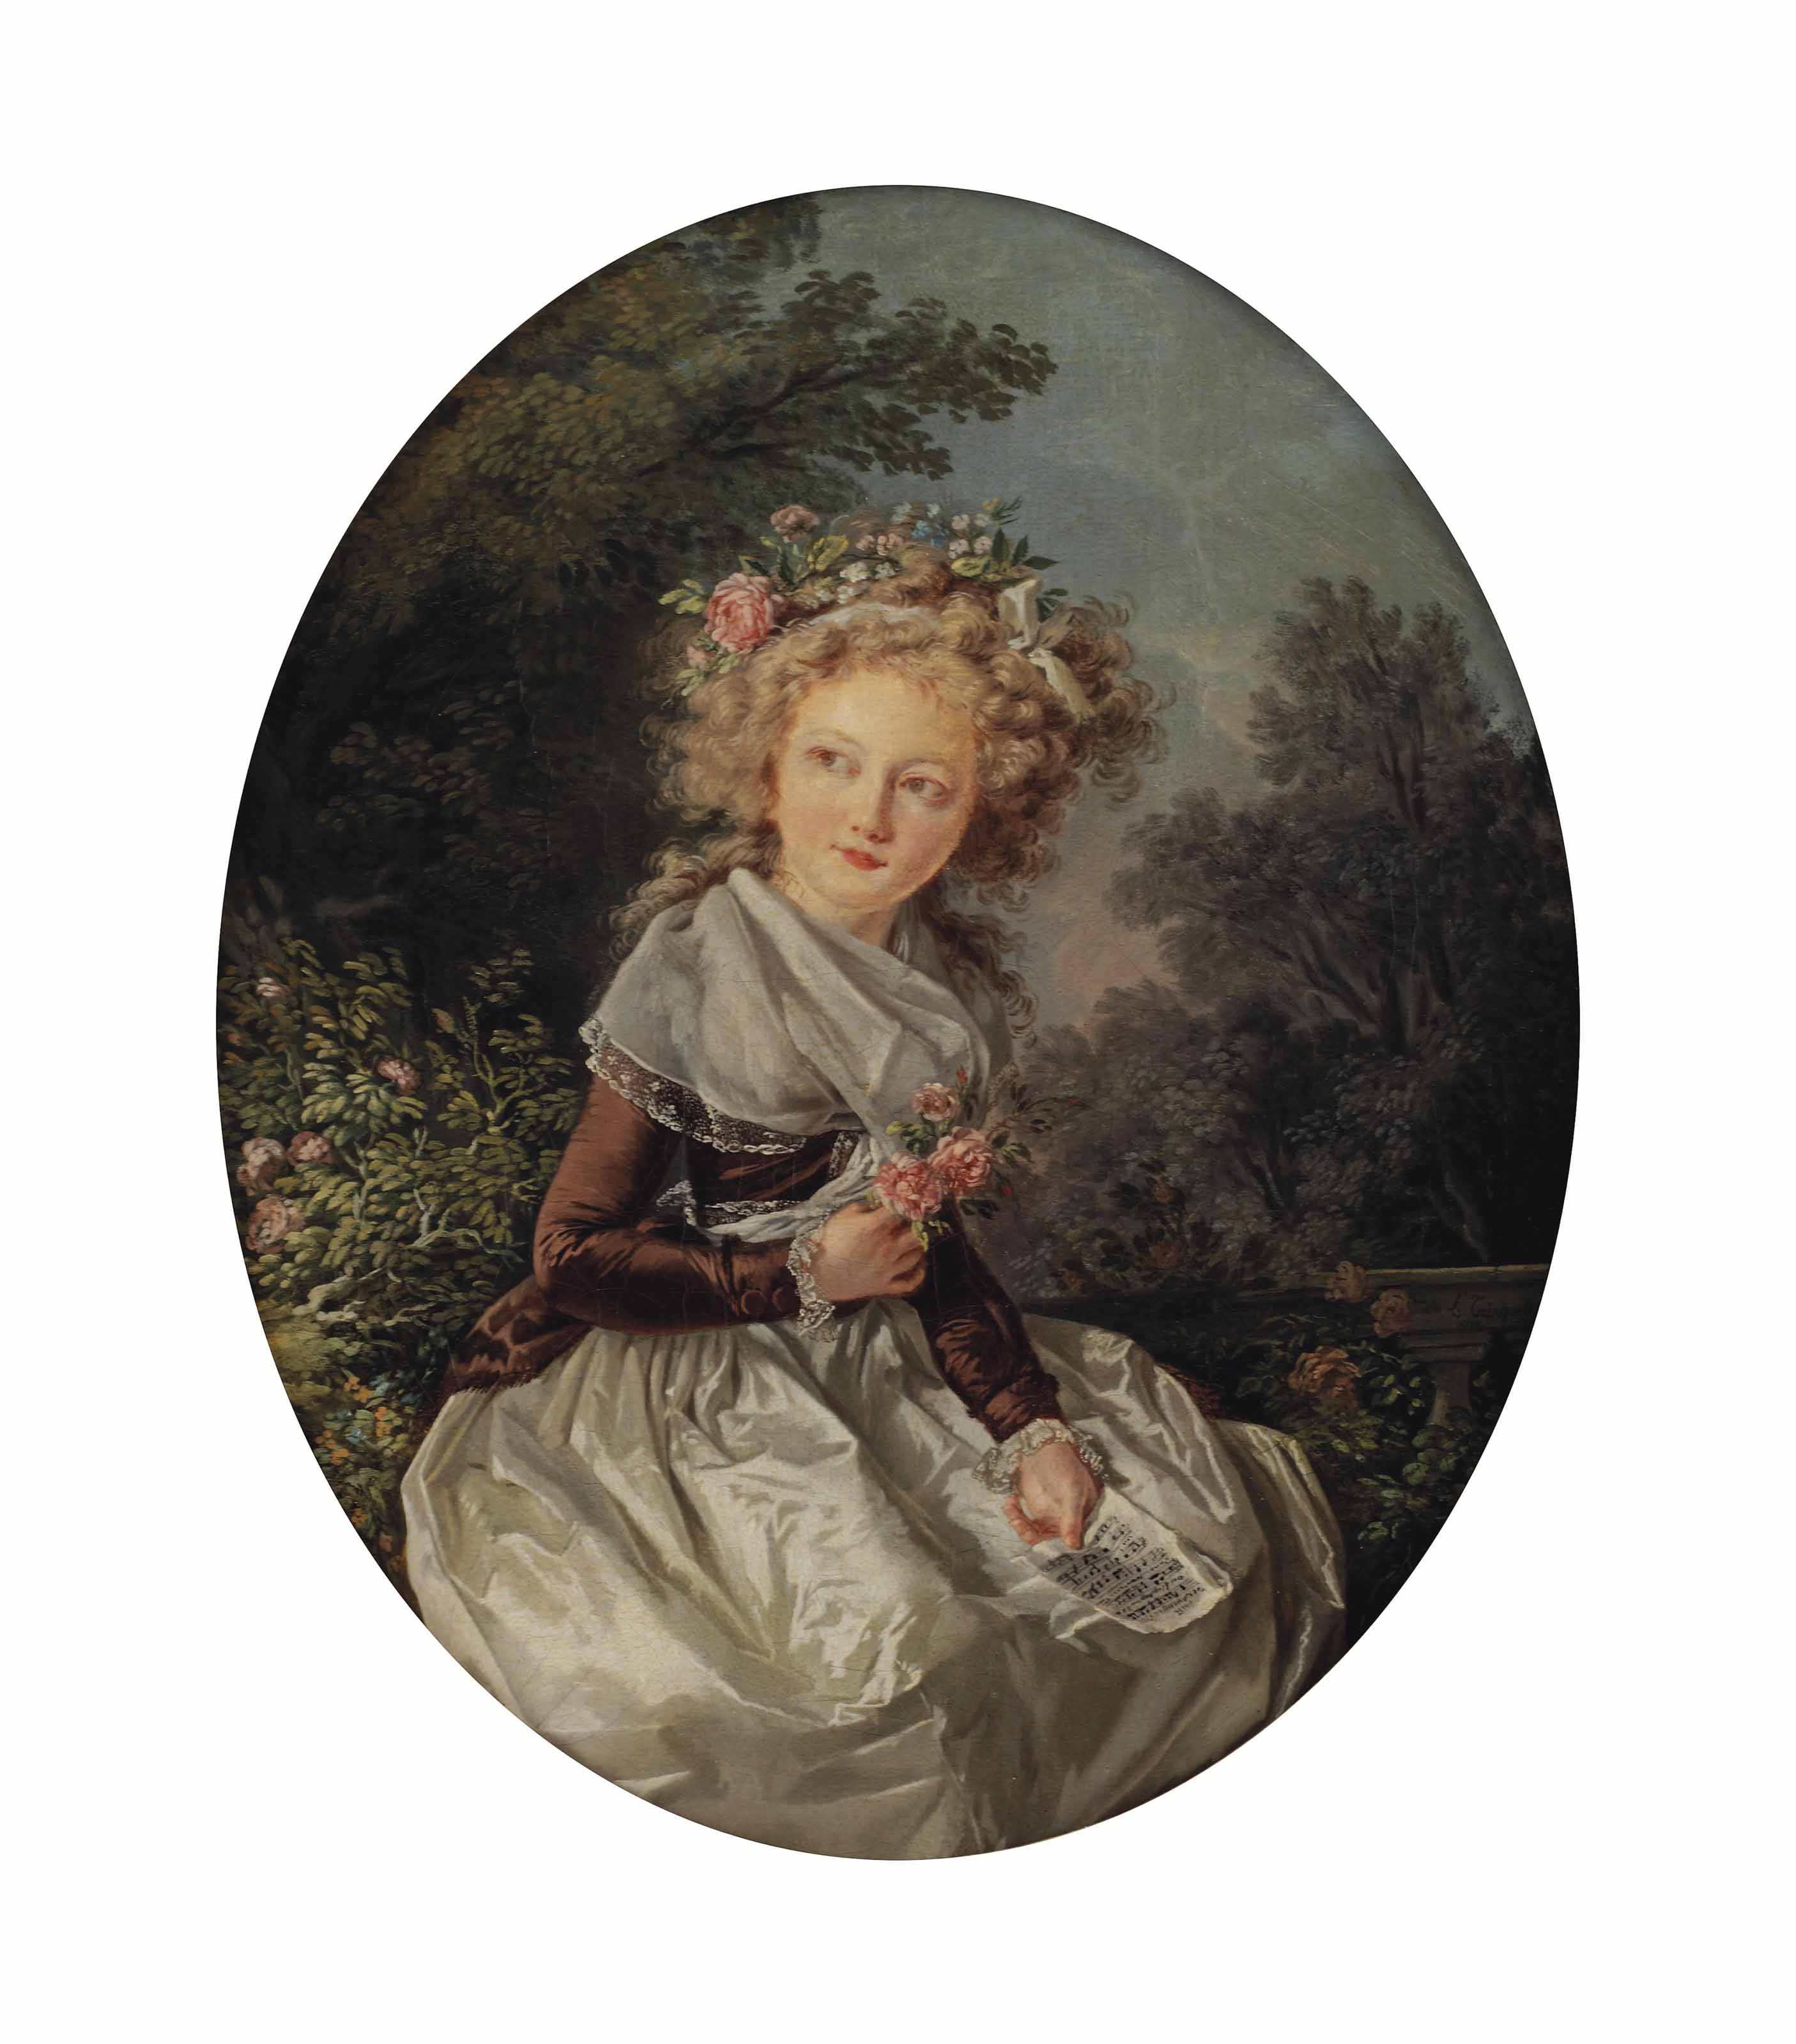 Portrait of a girl, three-quarter length, in a silk dress holding a sheet of music and a sprig of roses, seated in a landscape